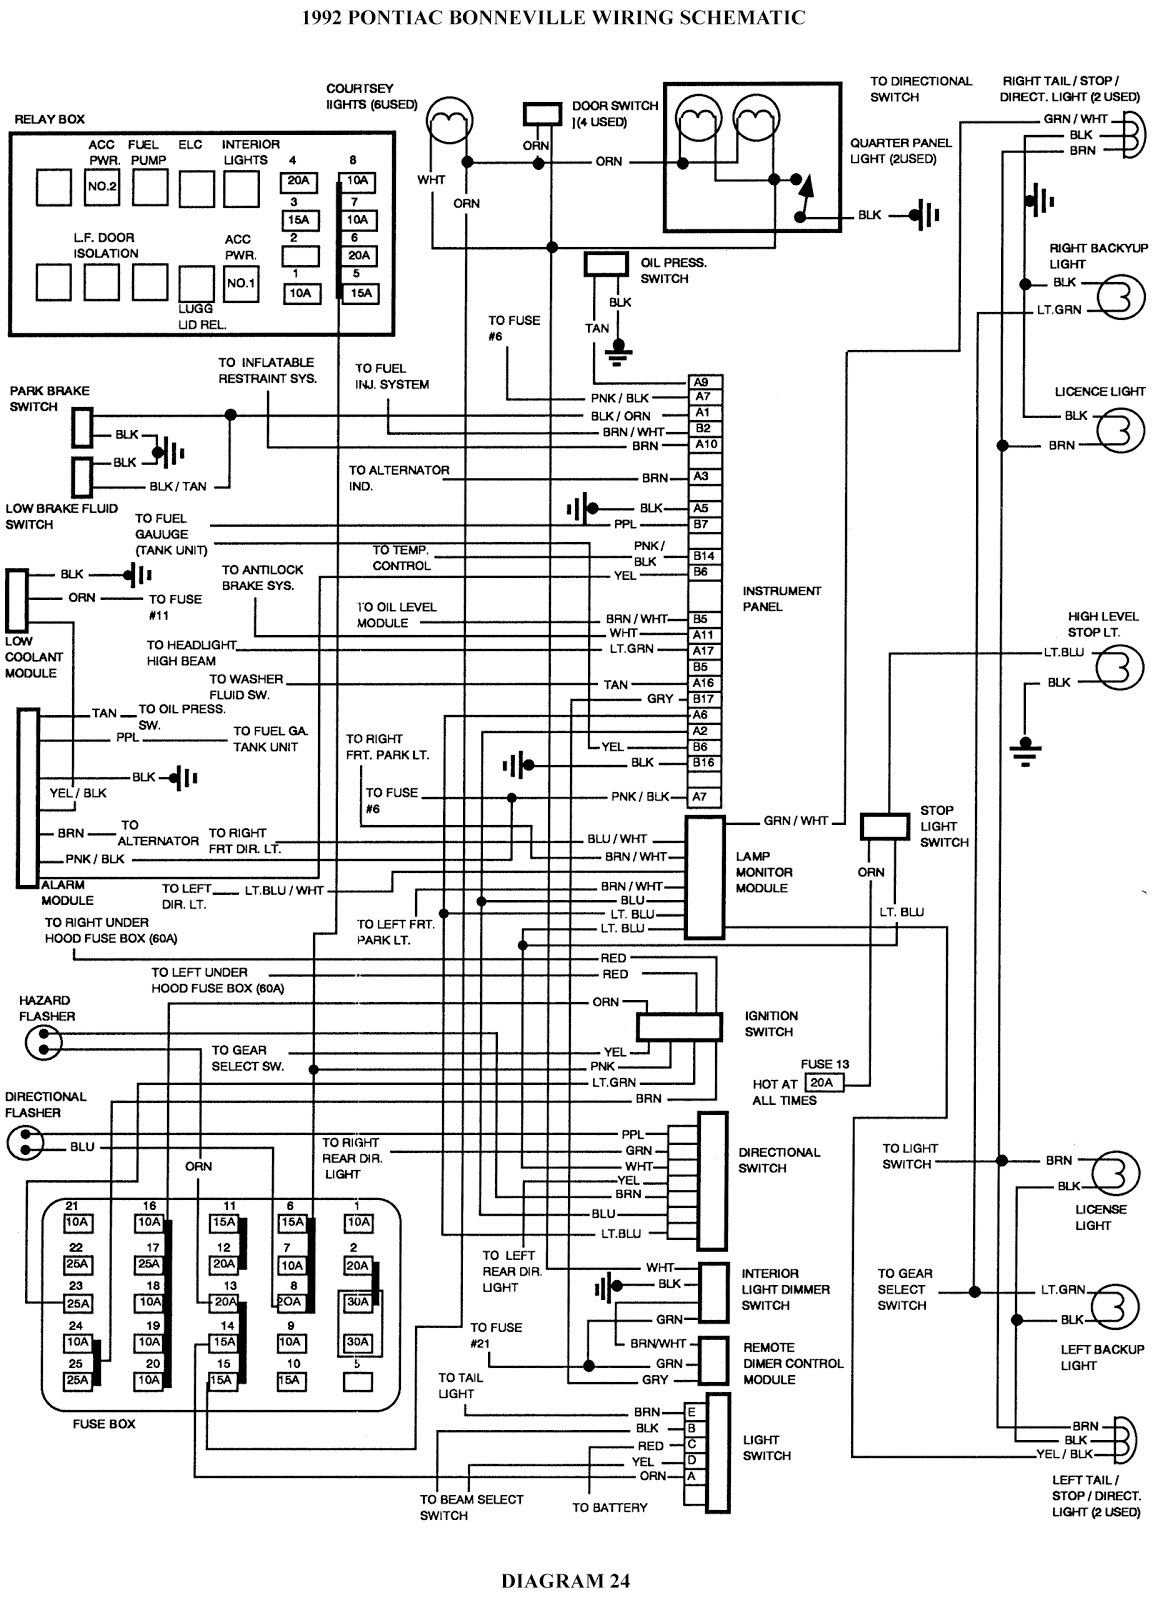 2000 pontiac bonneville electrical diagram